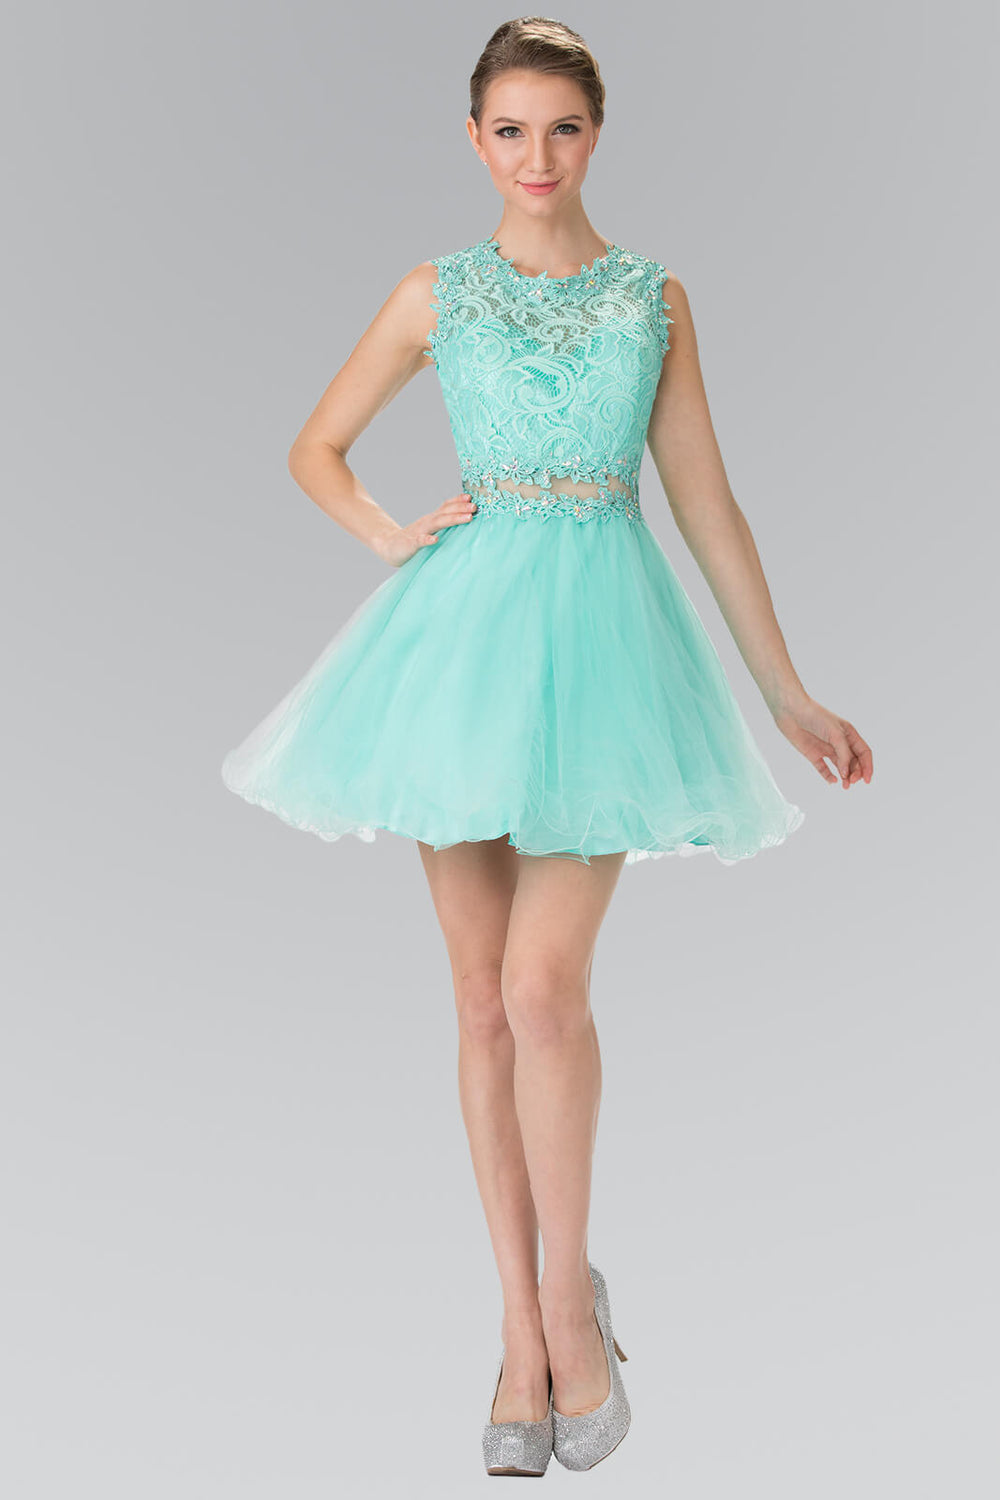 Sleeveless Prom Short Dress Homecoming - The Dress Outlet Mint